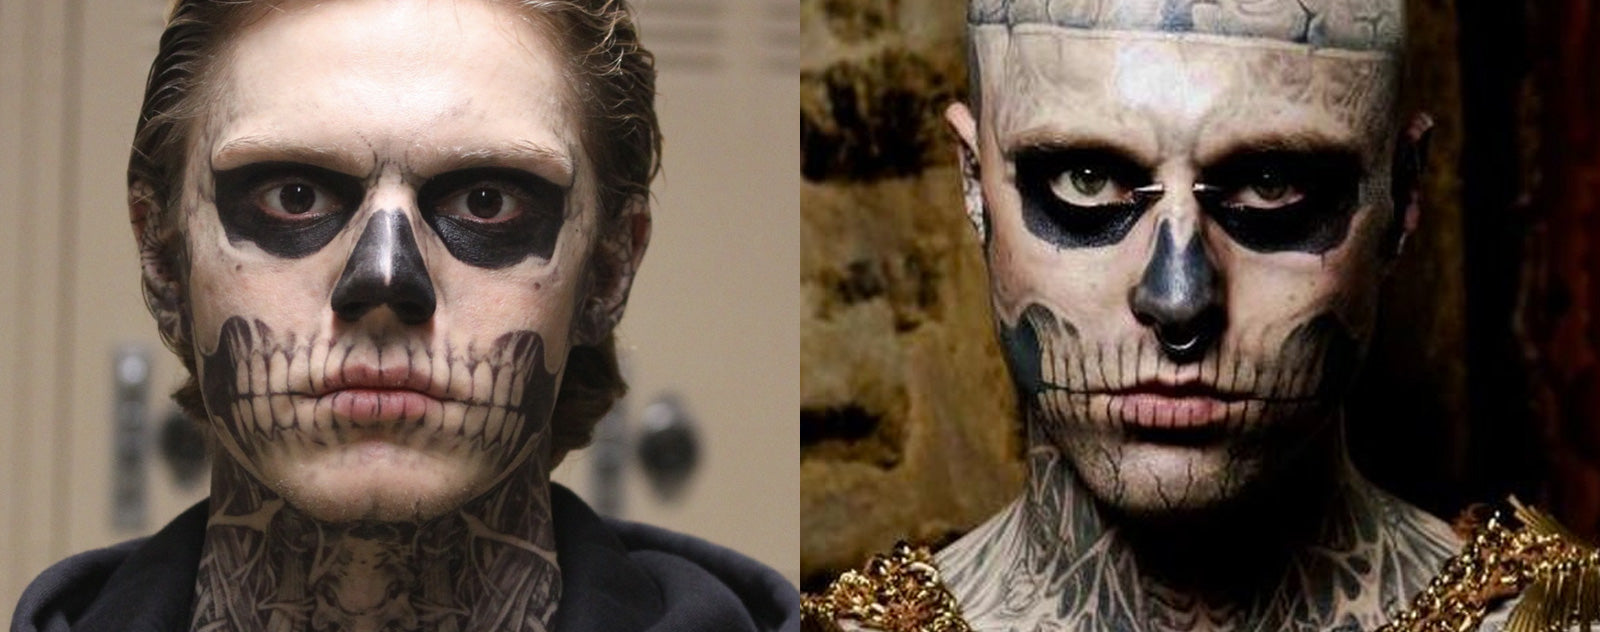 Evan Peters Zombie Boy